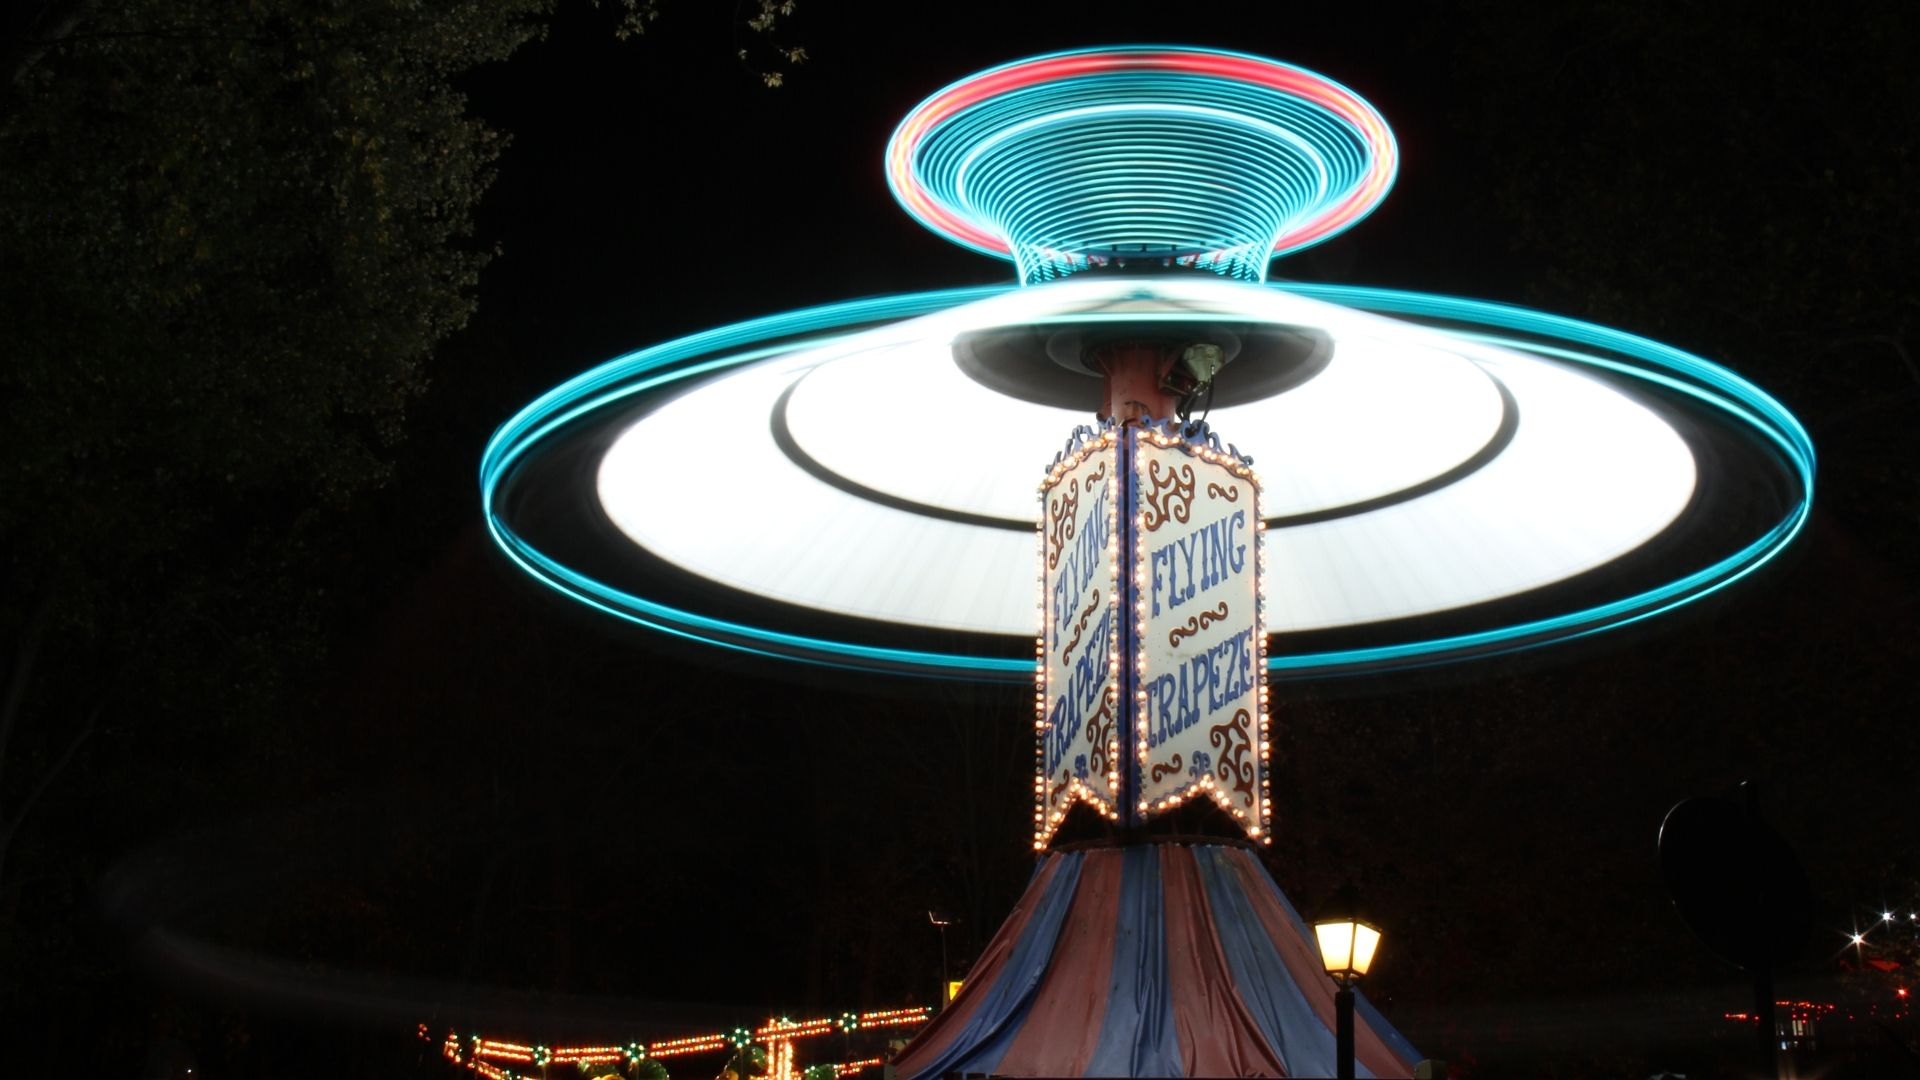 Long exposure photo with spinning Trapeze ride producing circular light trails at night